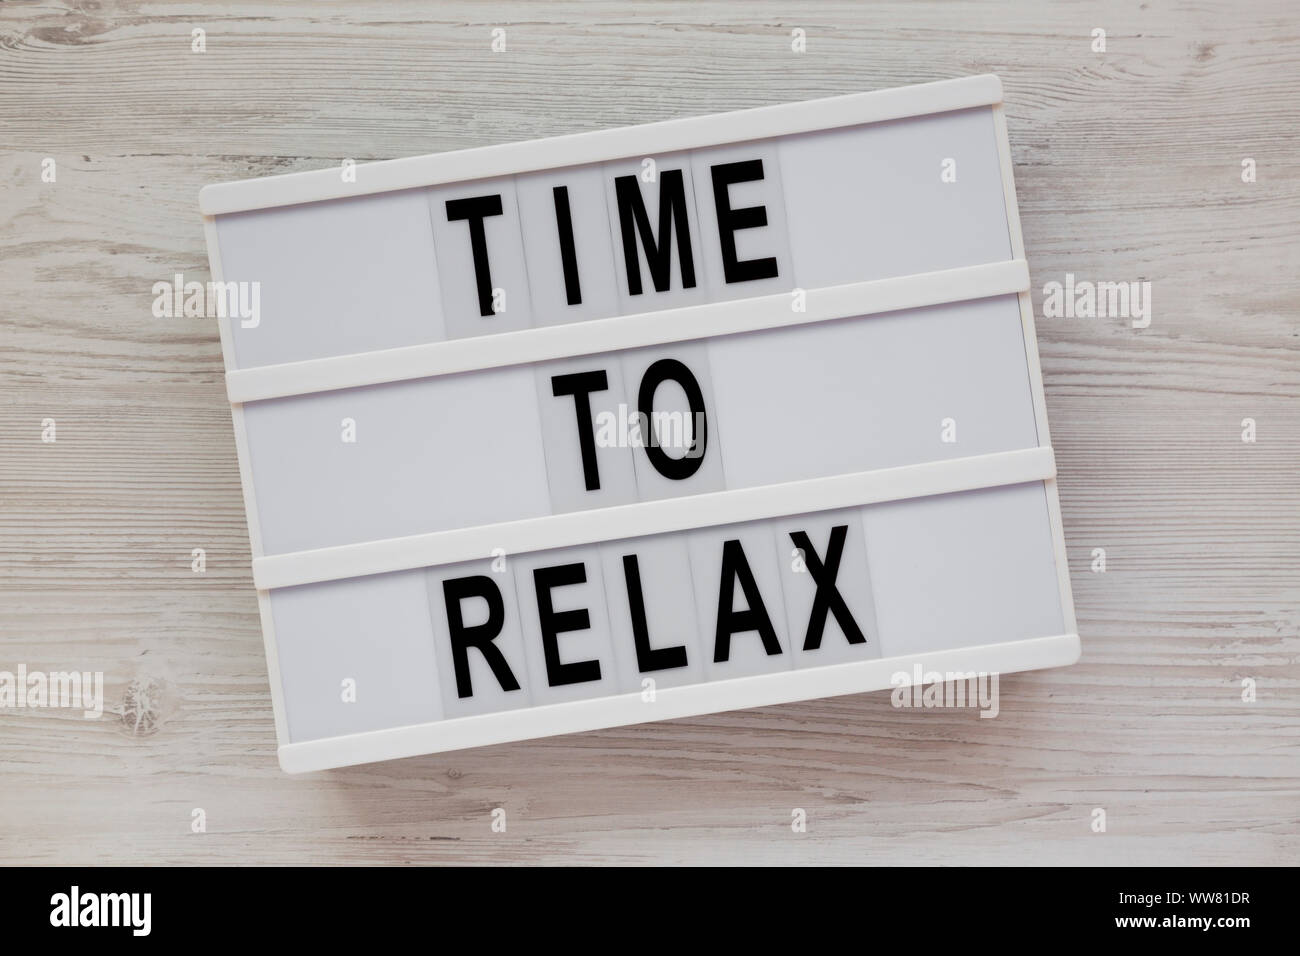 'Time to relax' words on a lightbox over white wooden surface, top view. Overhead, from above. Flat lay. Stock Photo